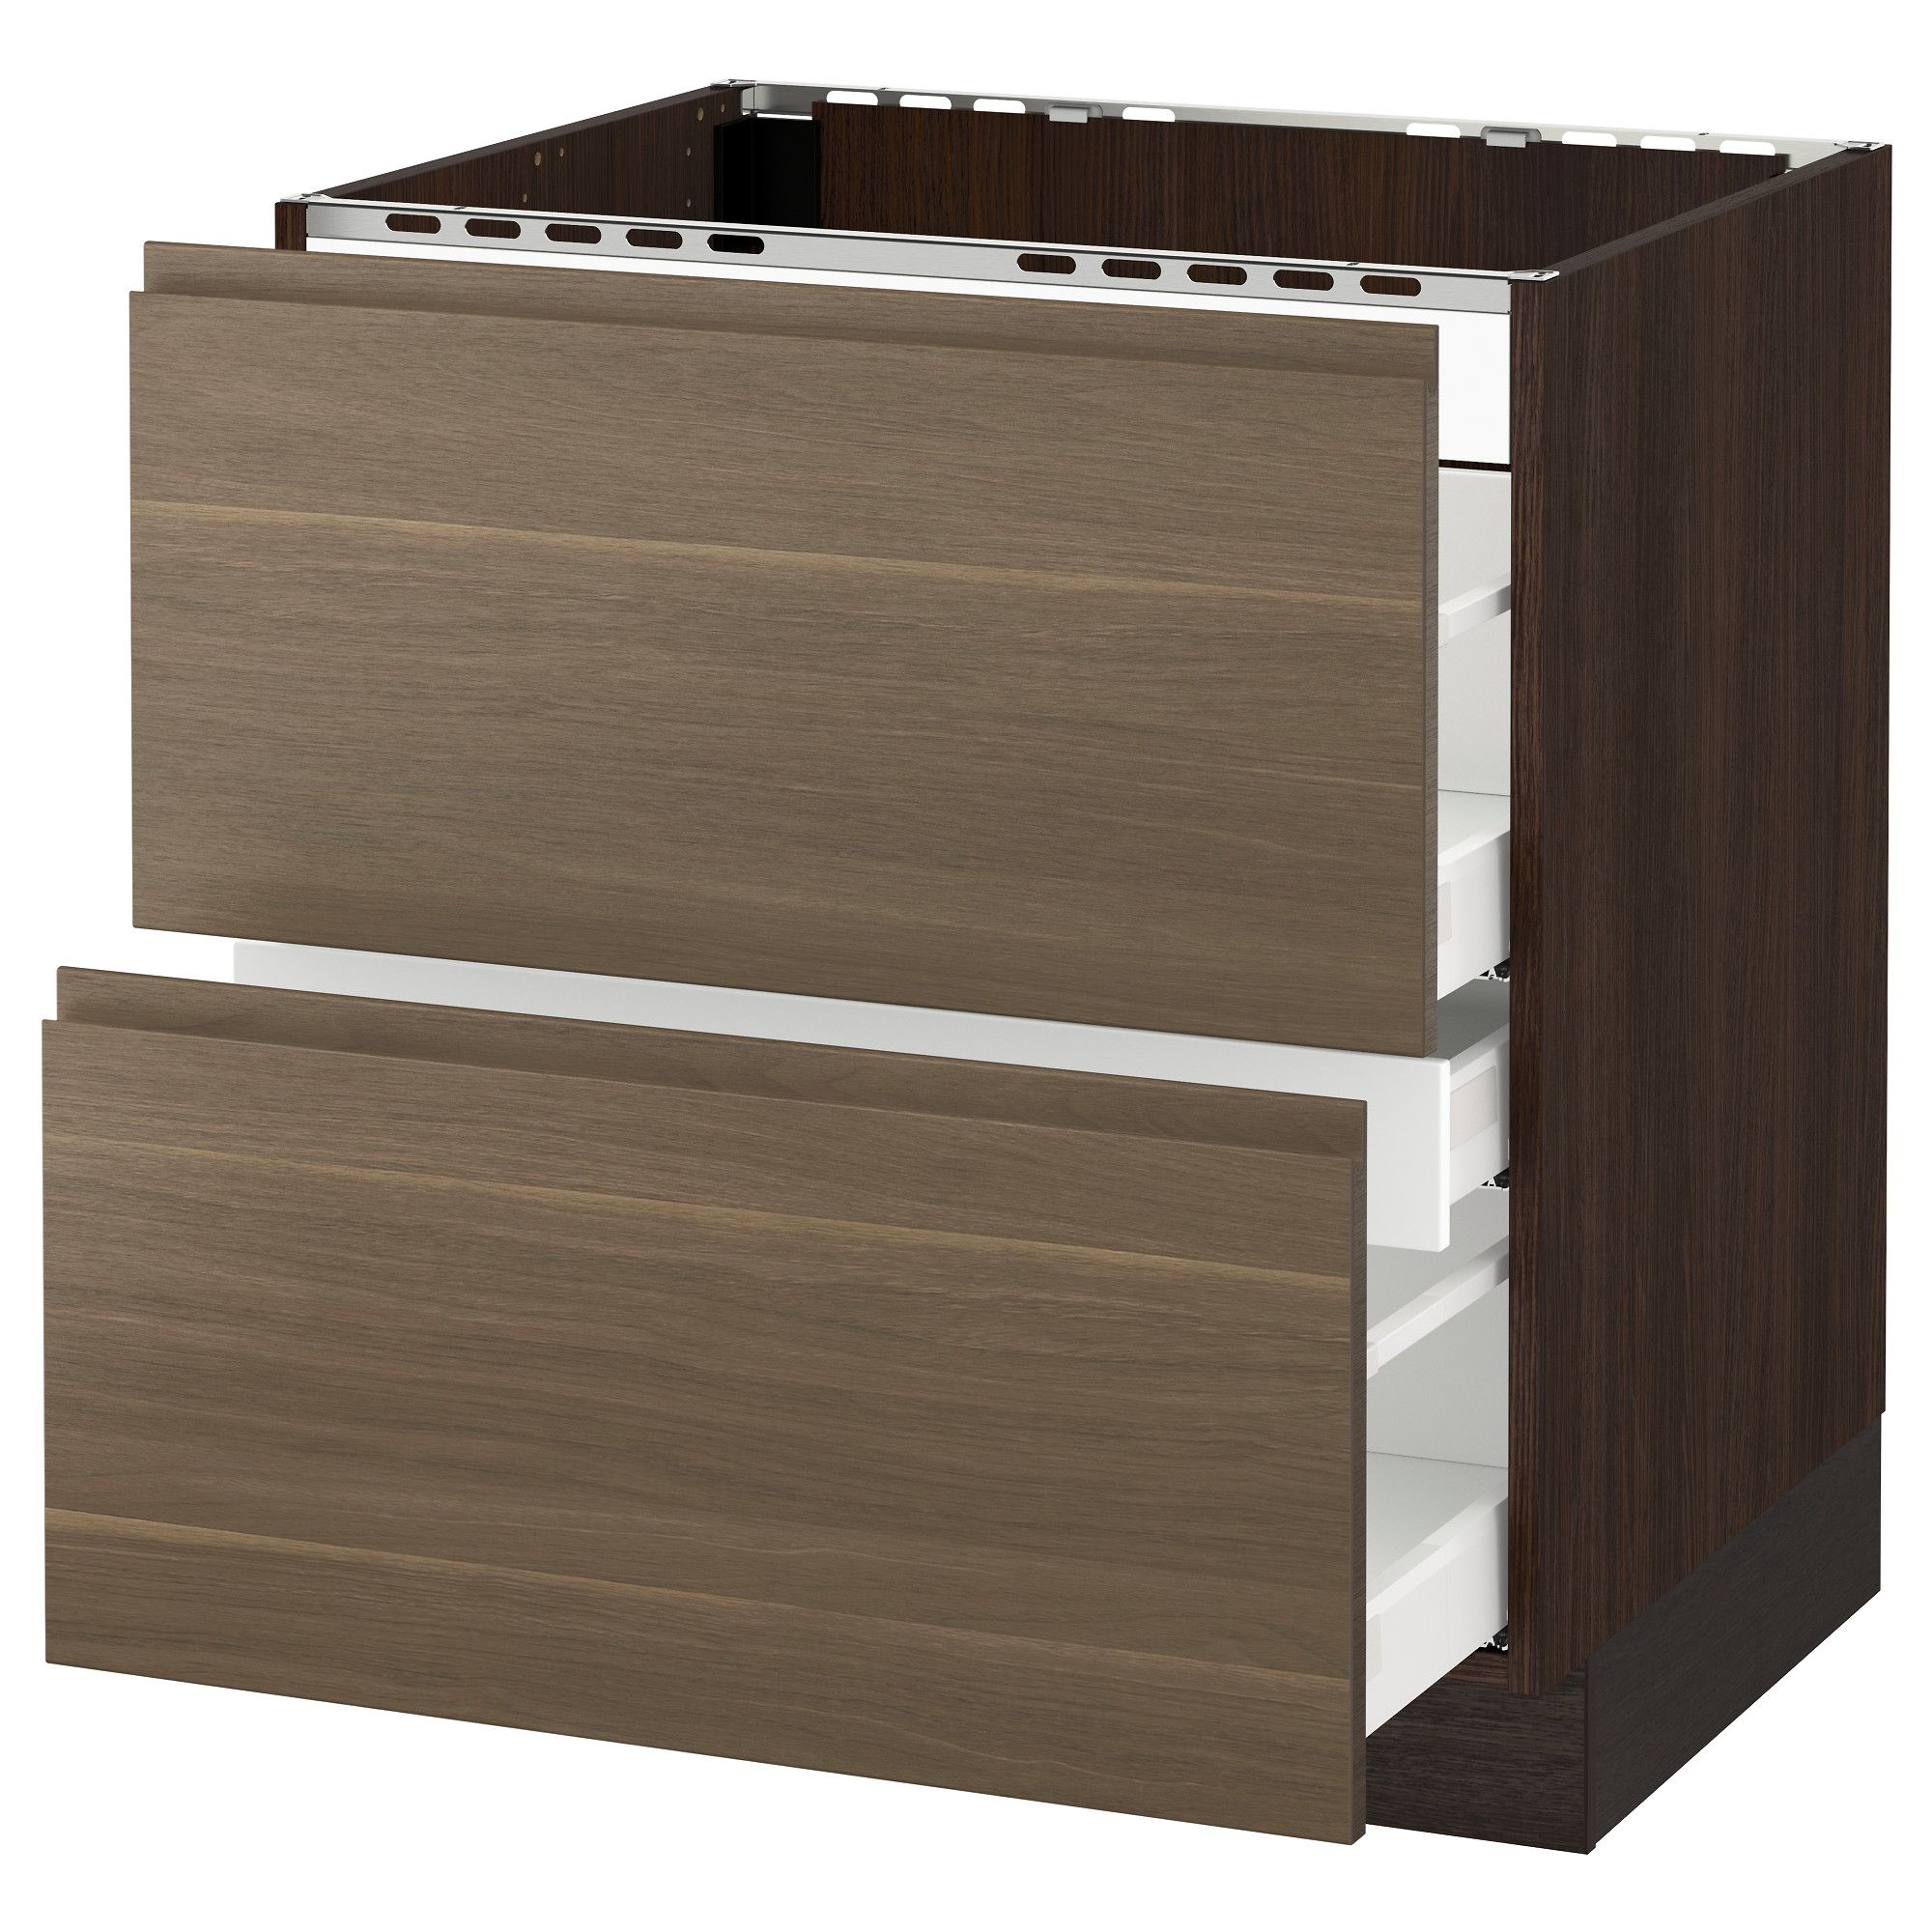 Ikea Sektion Wood Effect Brown Base Cabinet F Cooktop W 3 Drawers Base Cabinets Ikea Drawers